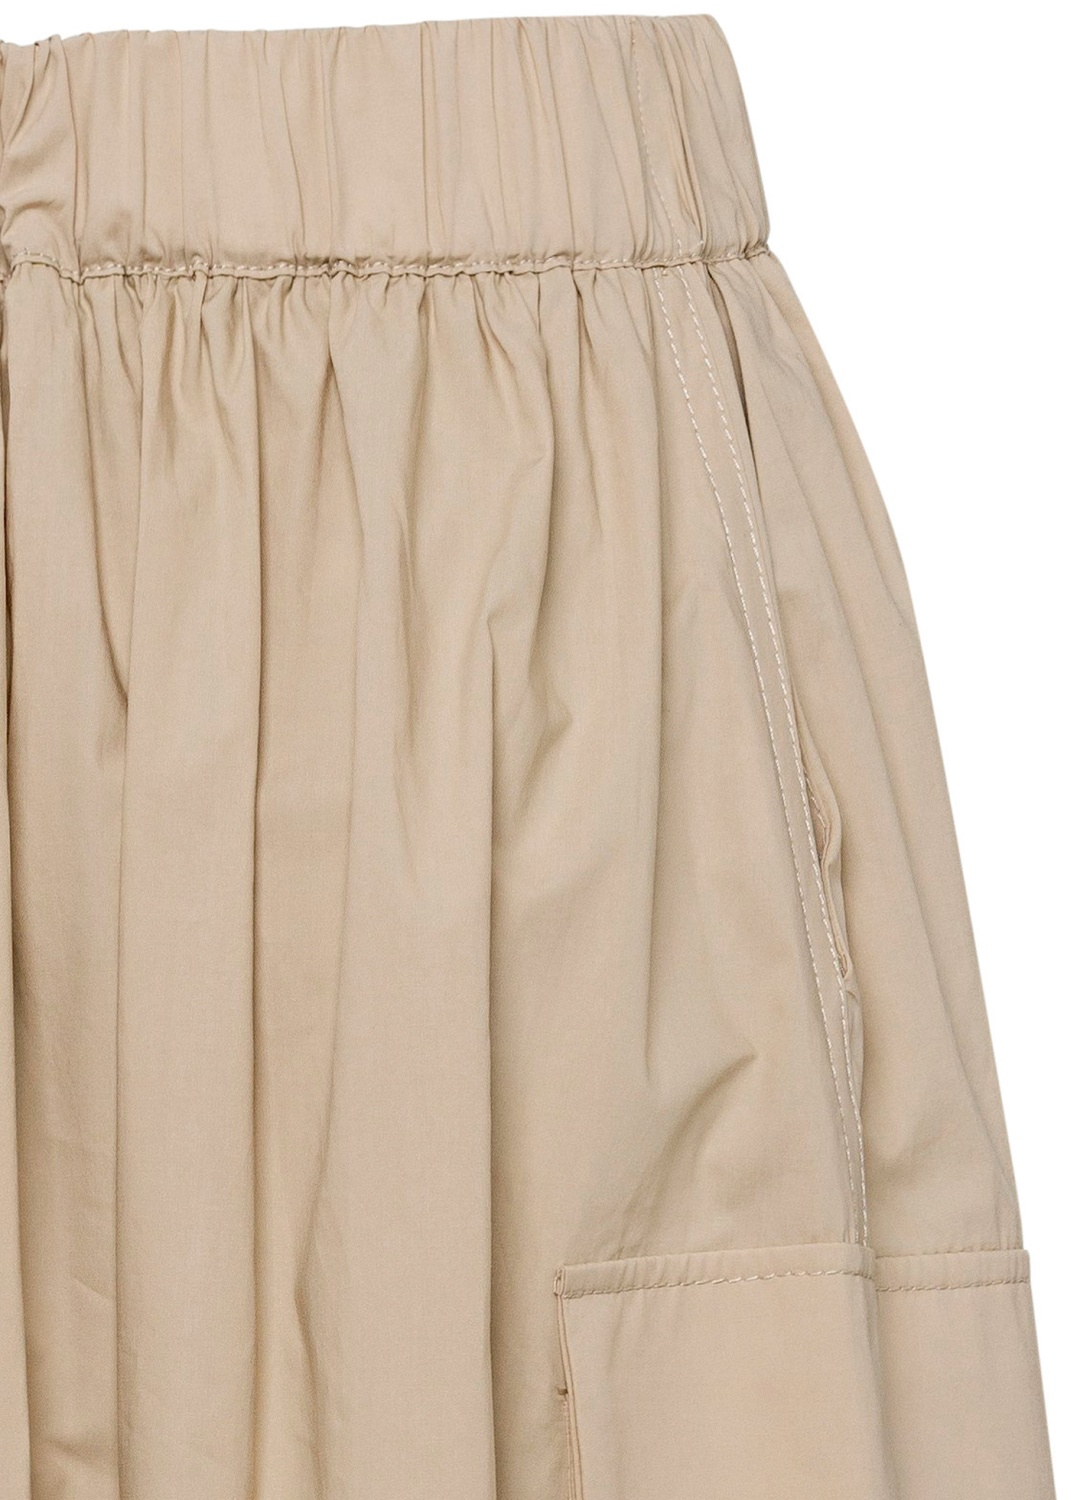 Cotton skirt female image number 3